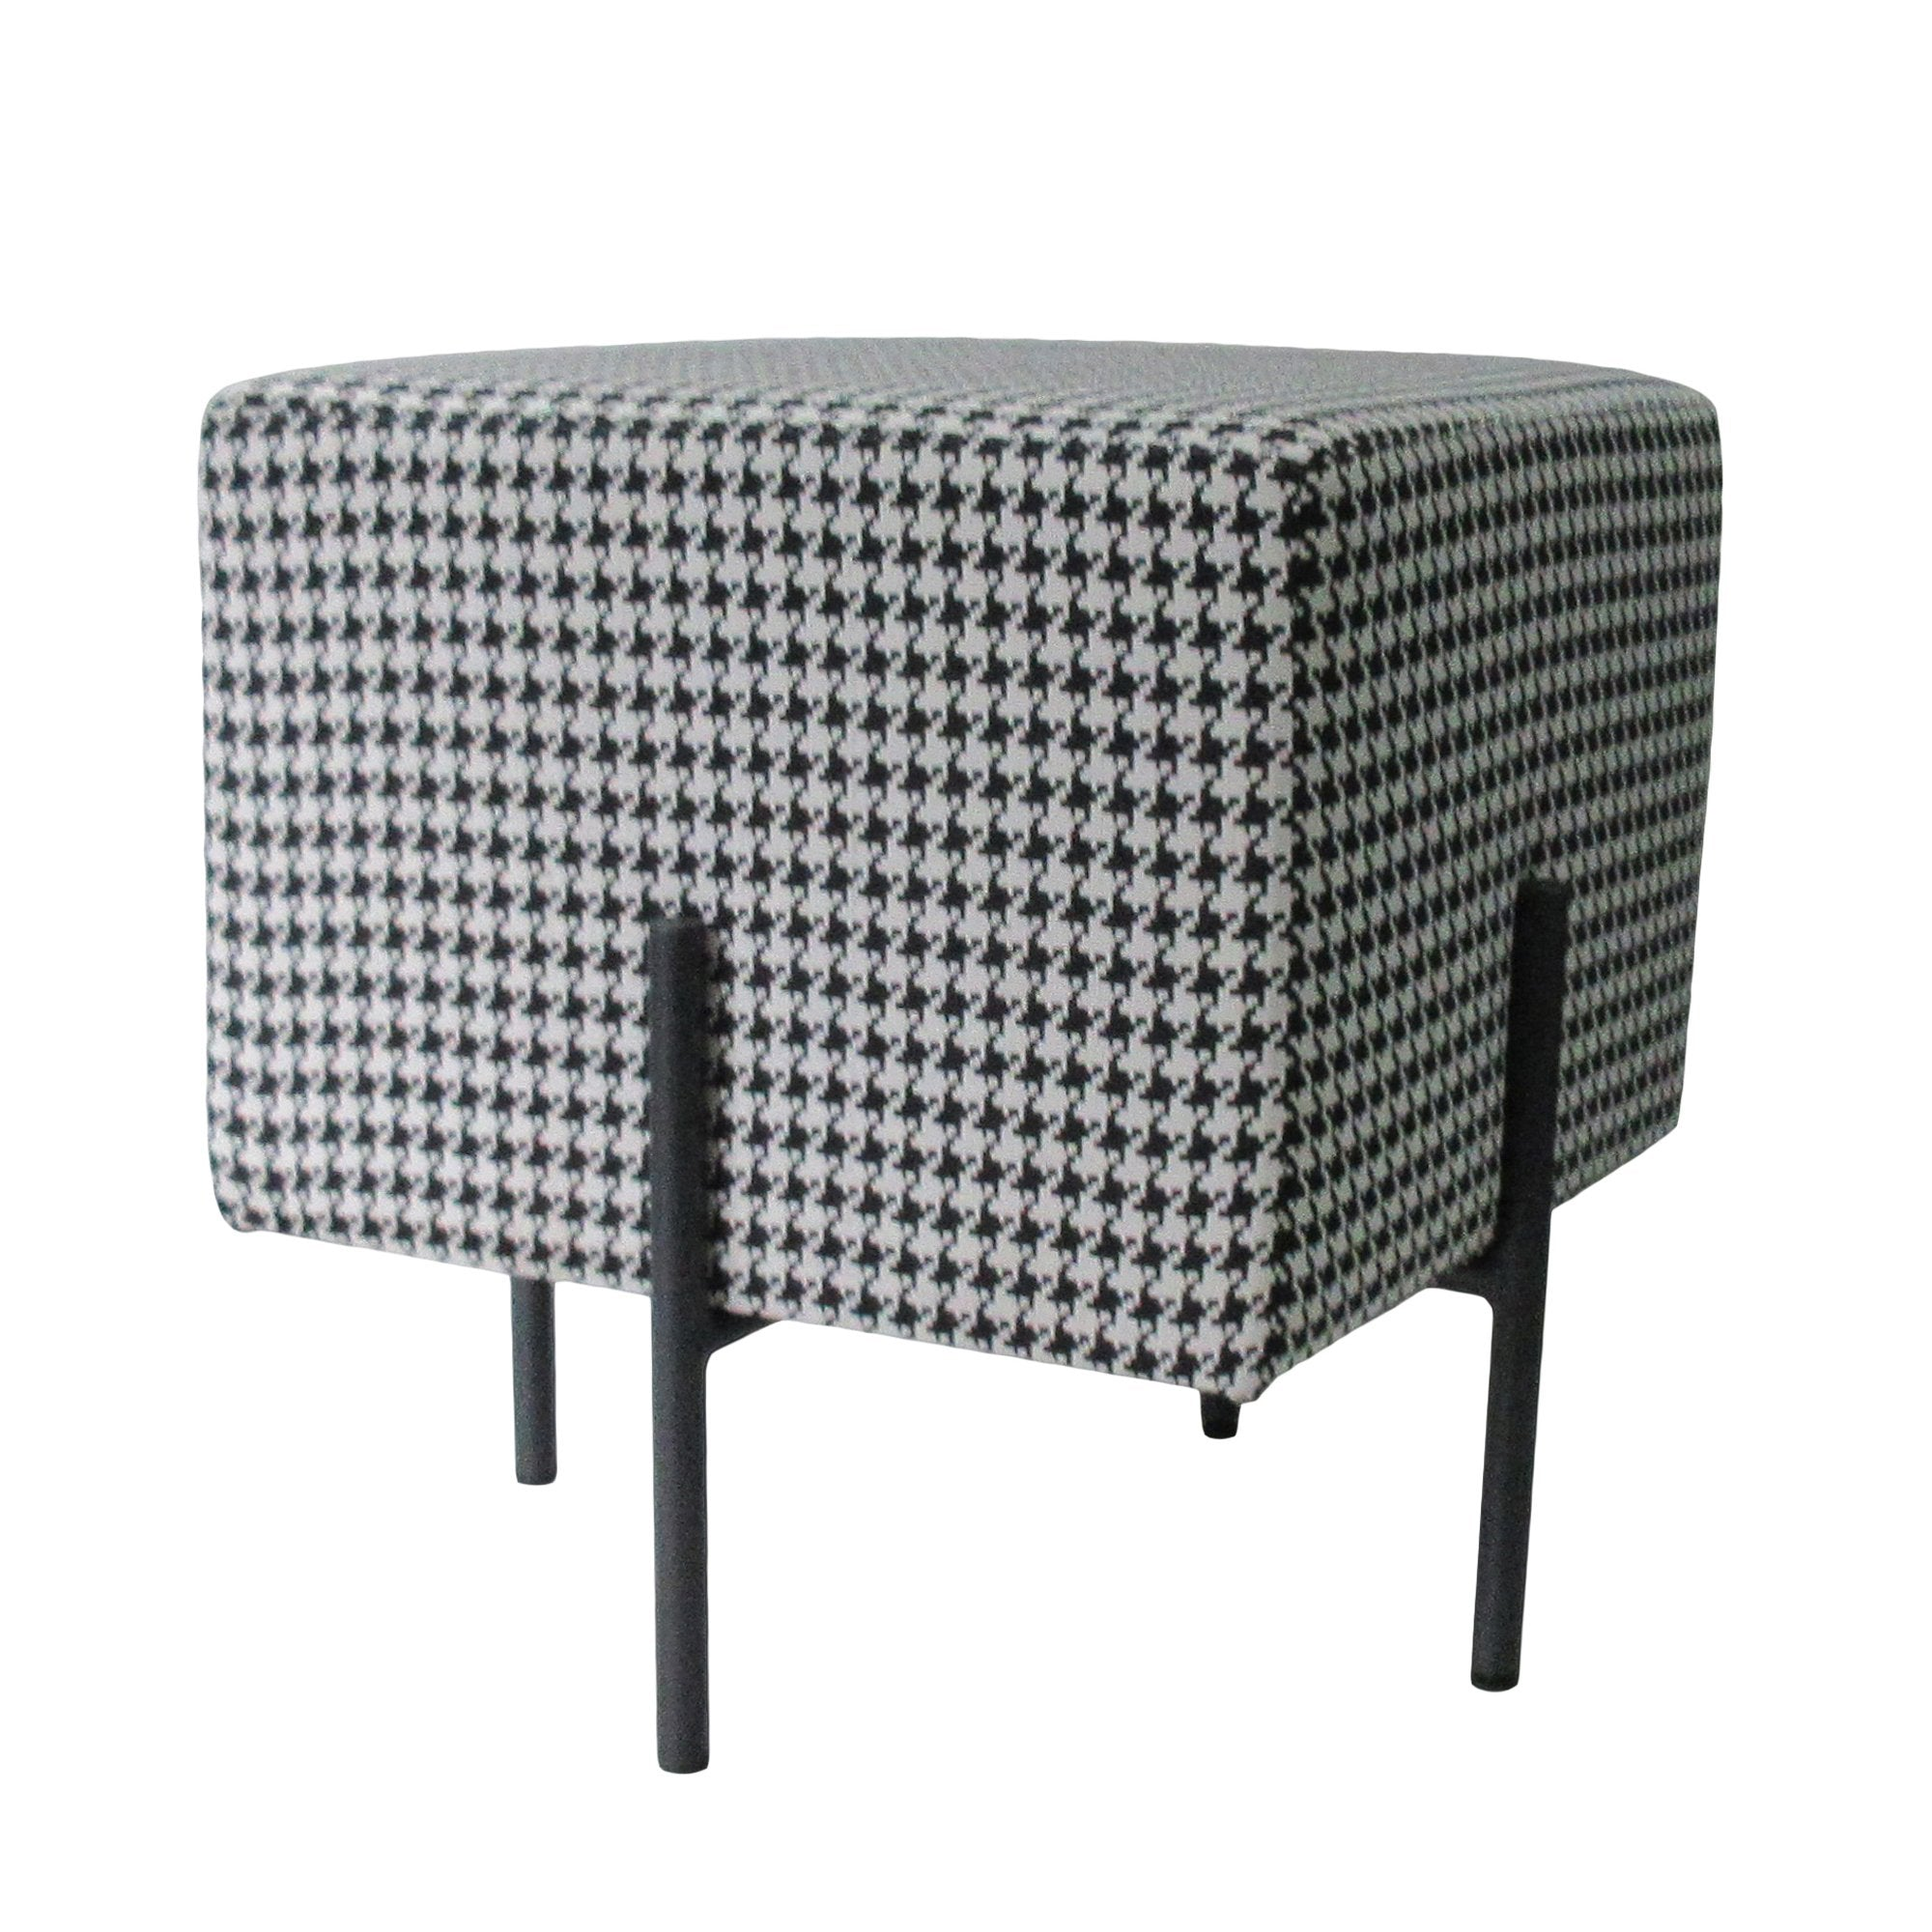 Picture of Earth Wind & Fire Square Pouffe Stool